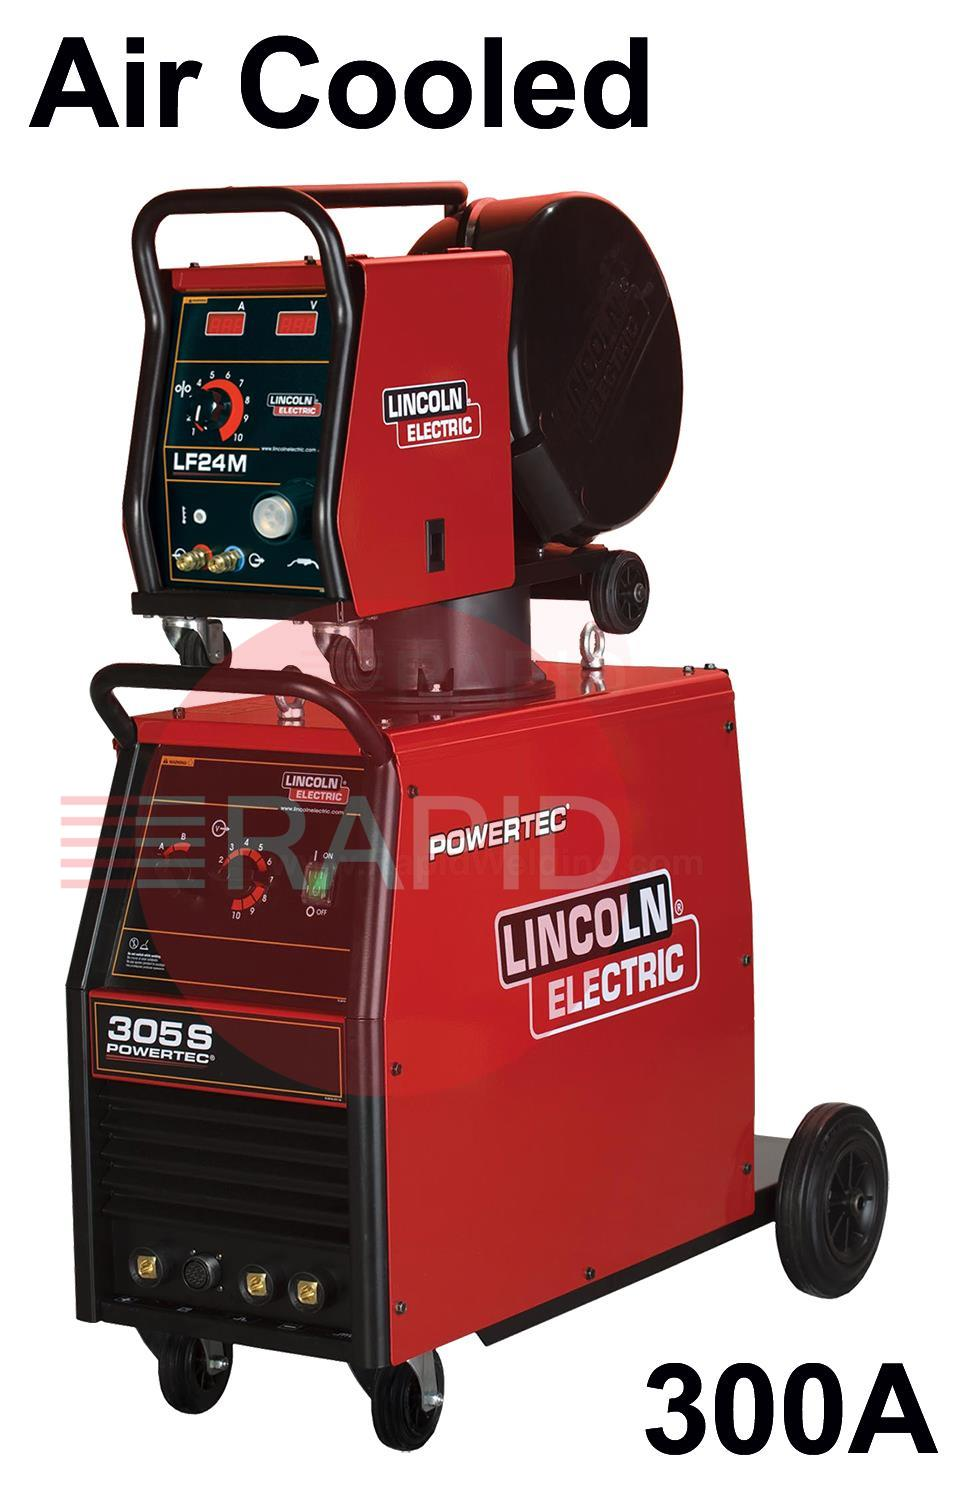 K14060-24-5P  Lincoln Powertec 305-S Mig Welder with LF-24M Wire Feeder and 5m Cable